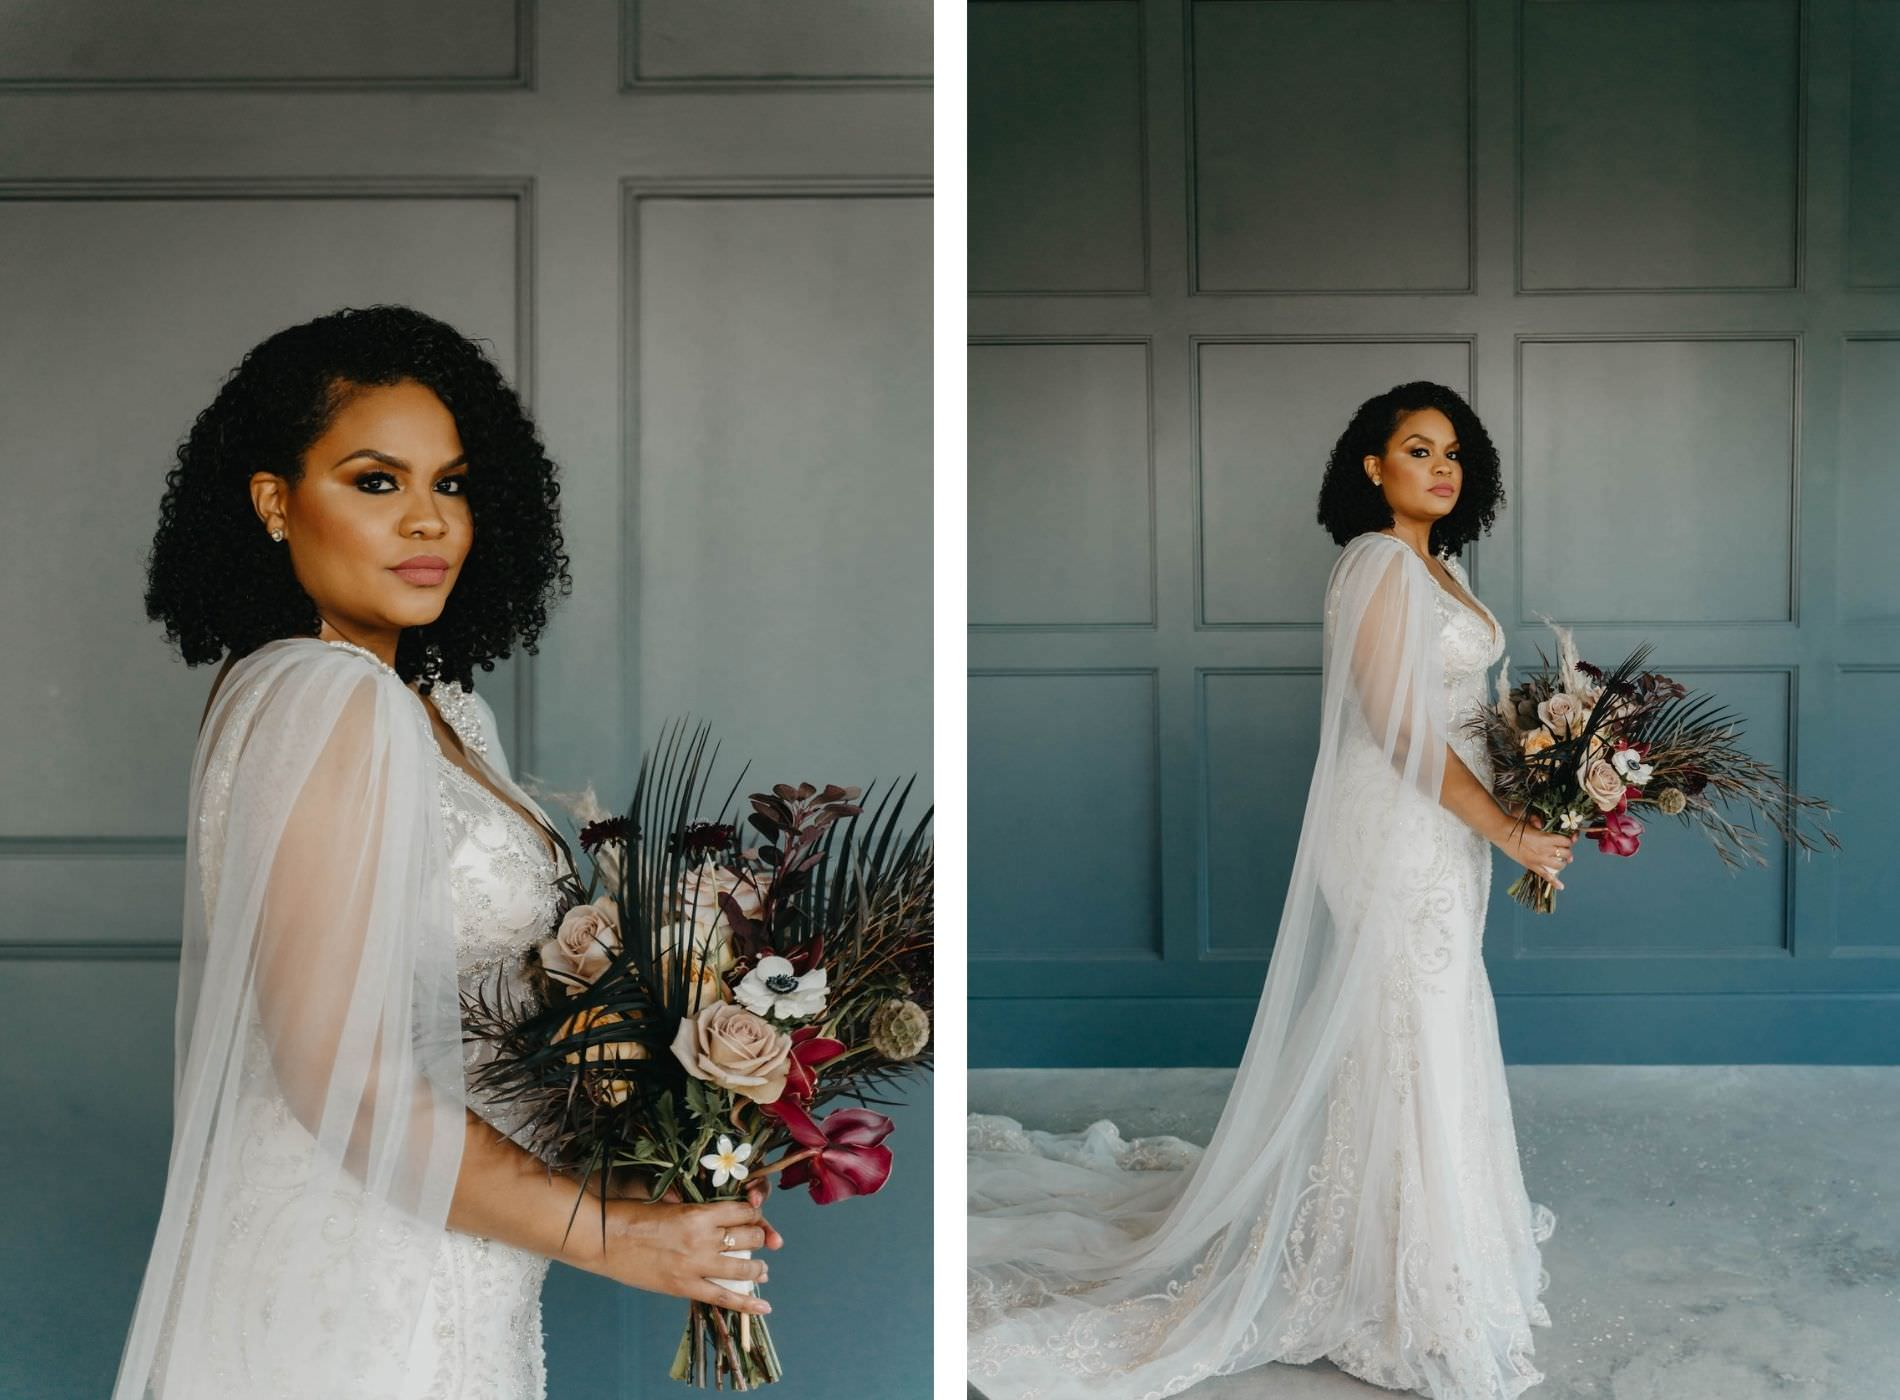 Indoor Bridal Portrait in Tampa Wedding Venue Hyde House   Illusion Lace Embroidered Beaded V Neck Wedding Dress Bridal Gown with Sheer Tulle Cape Sleeves by Designer Amalia Carrara Bridal   Boho Moody Wild Bridal Bouquet with Deep Green Leaves, Cafe au Lait Roses and Deep Red Burgundy Scabiosa and Orchids